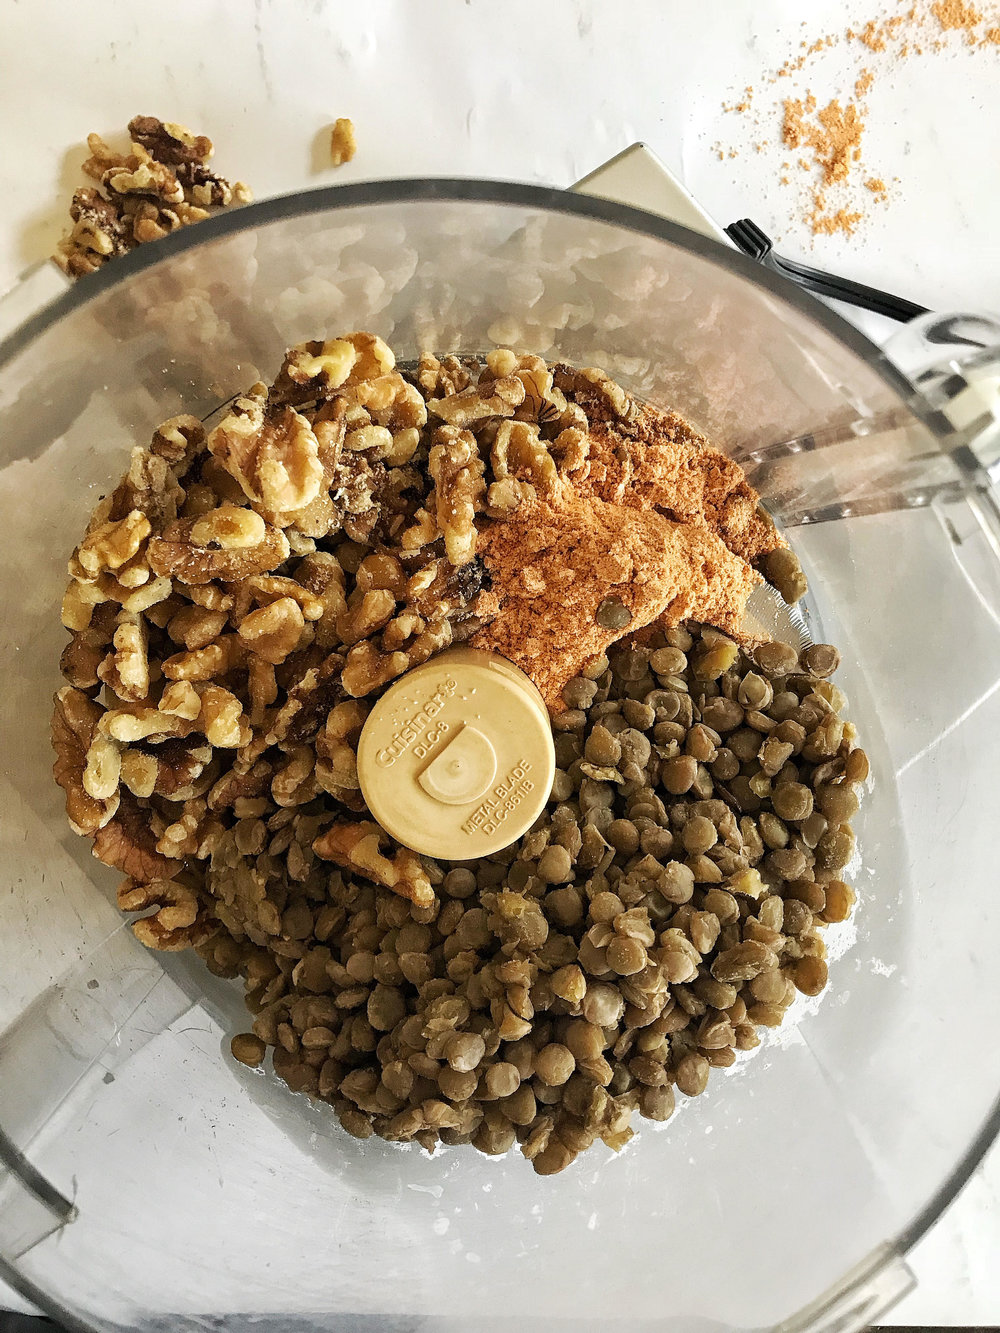 My Lentil Walnut Ground Beef is the perfect alternative to the fat-laden original. It is extremely versatile (Mexican and Italian are my favorite cuisines to add this too!) This batch lasted us about 3 days with leftovers.